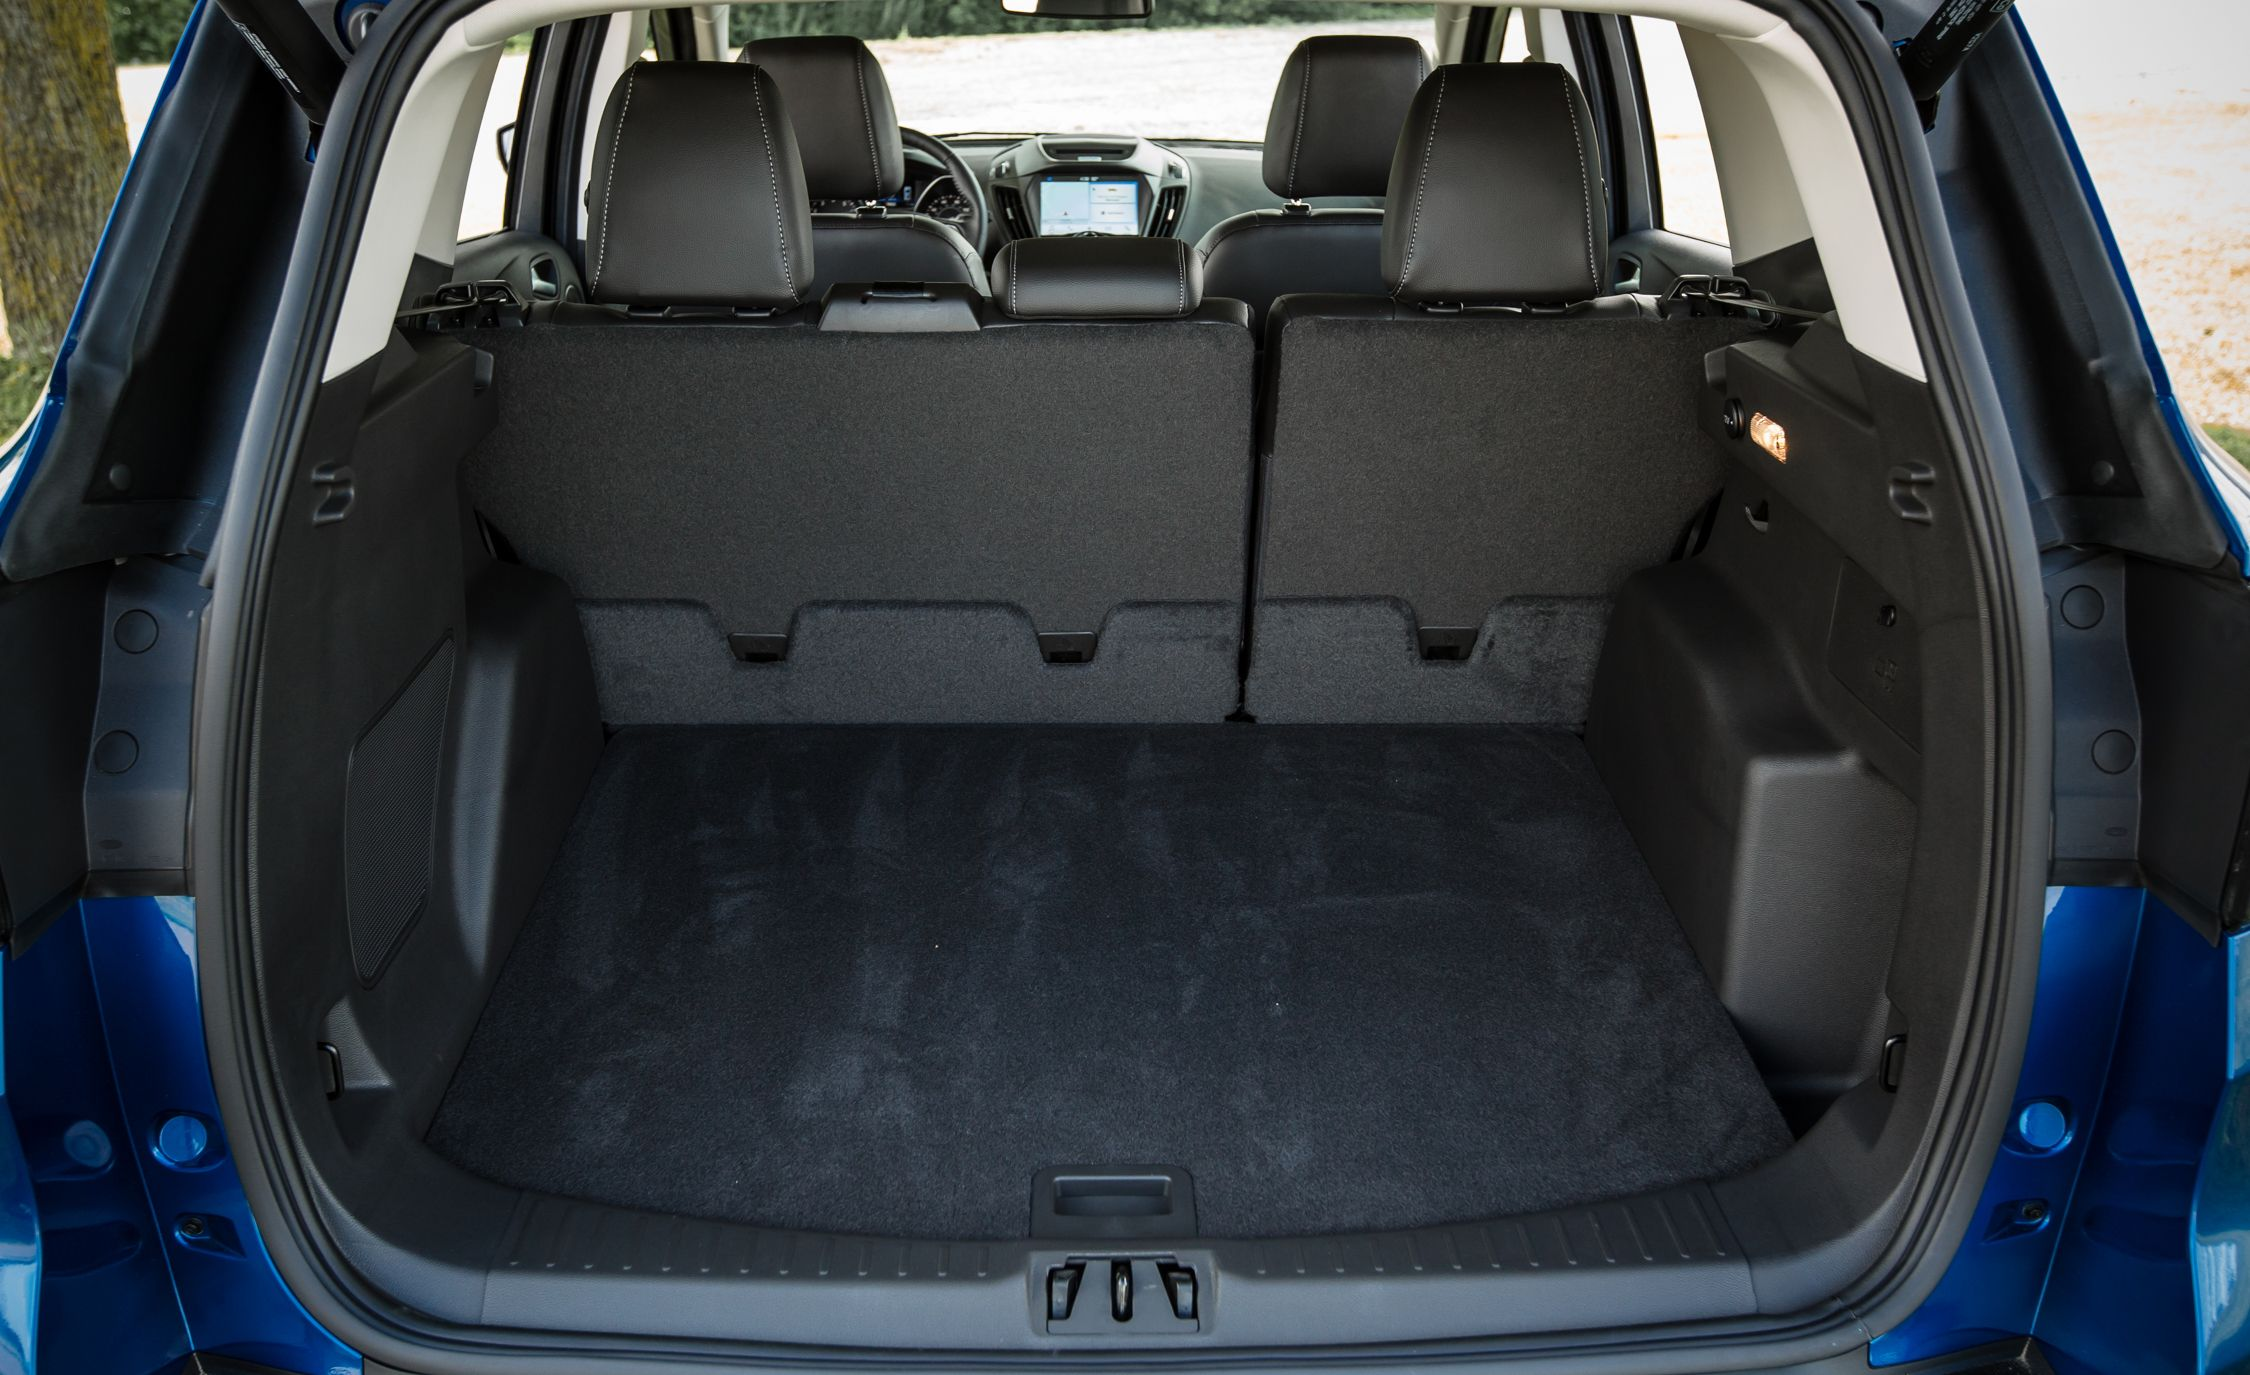 Ford Escape Trunk Space Dimensions >> 2017 Ford Escape | In-Depth Model Review | Car and Driver